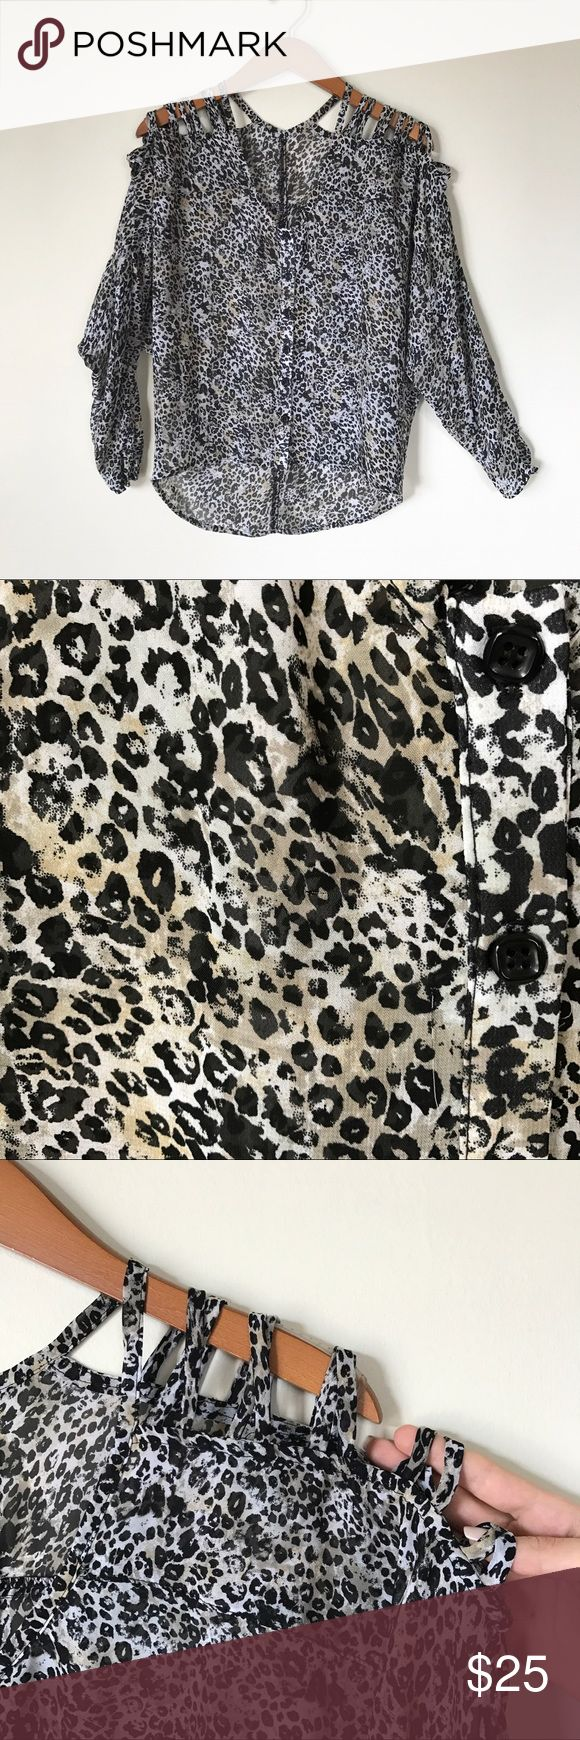 Leopard Print Blouse with Cold Shoulder Semi-sheer leopard print blouse with black buttons and cold shoulder design. Black and cream-colored with subtle patches of beige (see close-up photo). Thin straps over shoulders hold the shirt up properly. Blousy one-size-fits-all will work for size small through large. No flaws. Machine washable. MADE IN USA! Black Hearts Brigade Tops Blouses